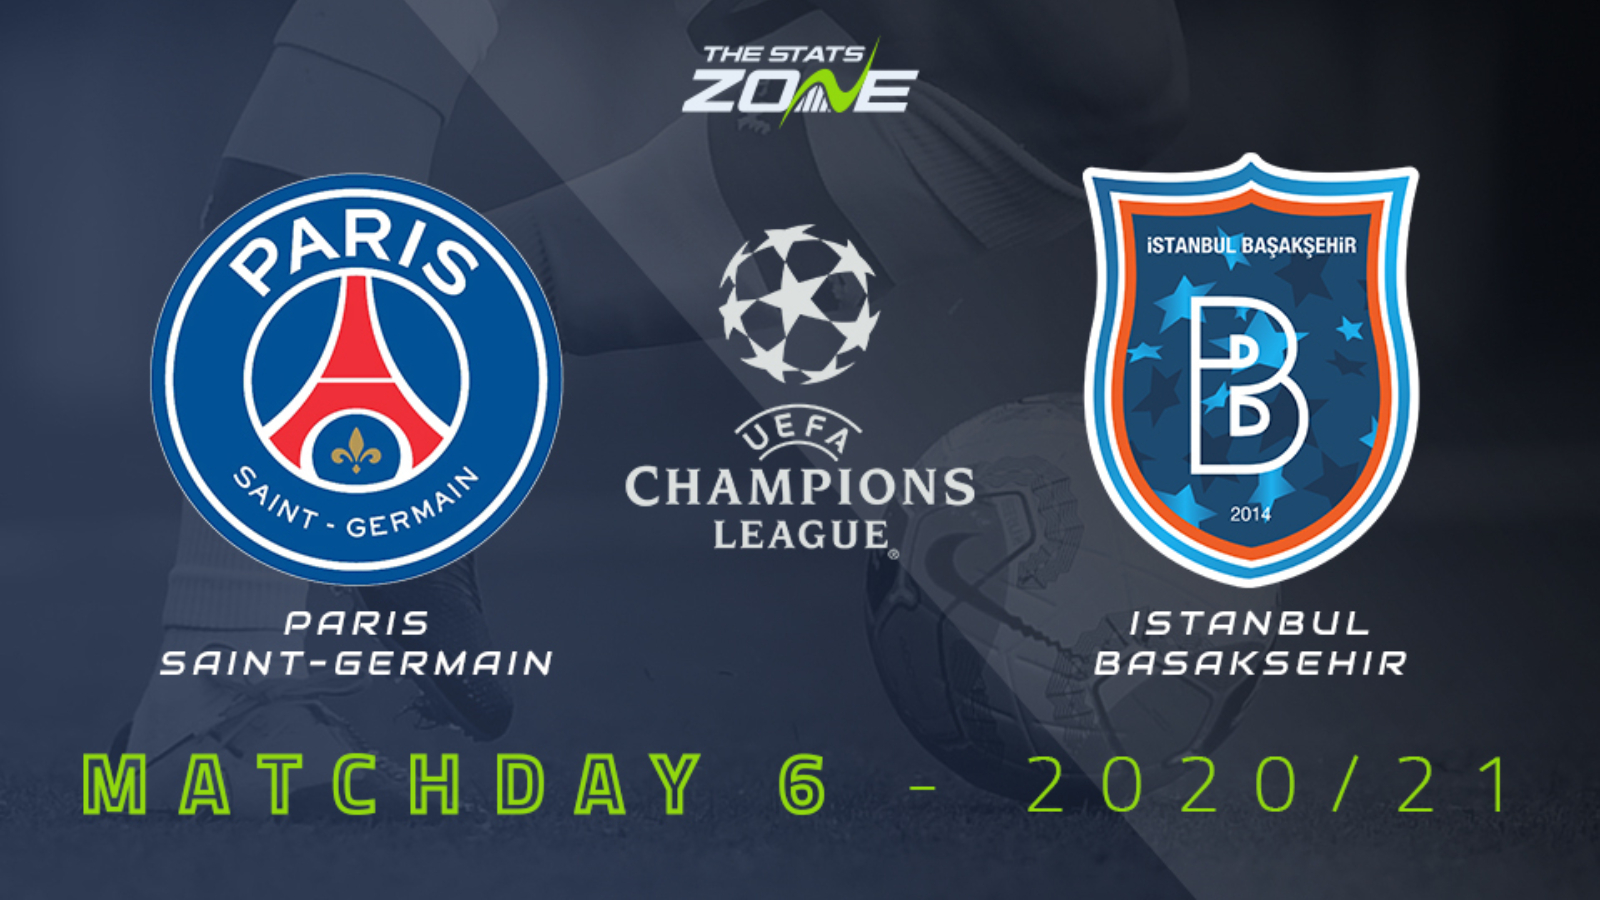 Toulouse vs psg betting expert soccer i can t bet on dota2lounge betting